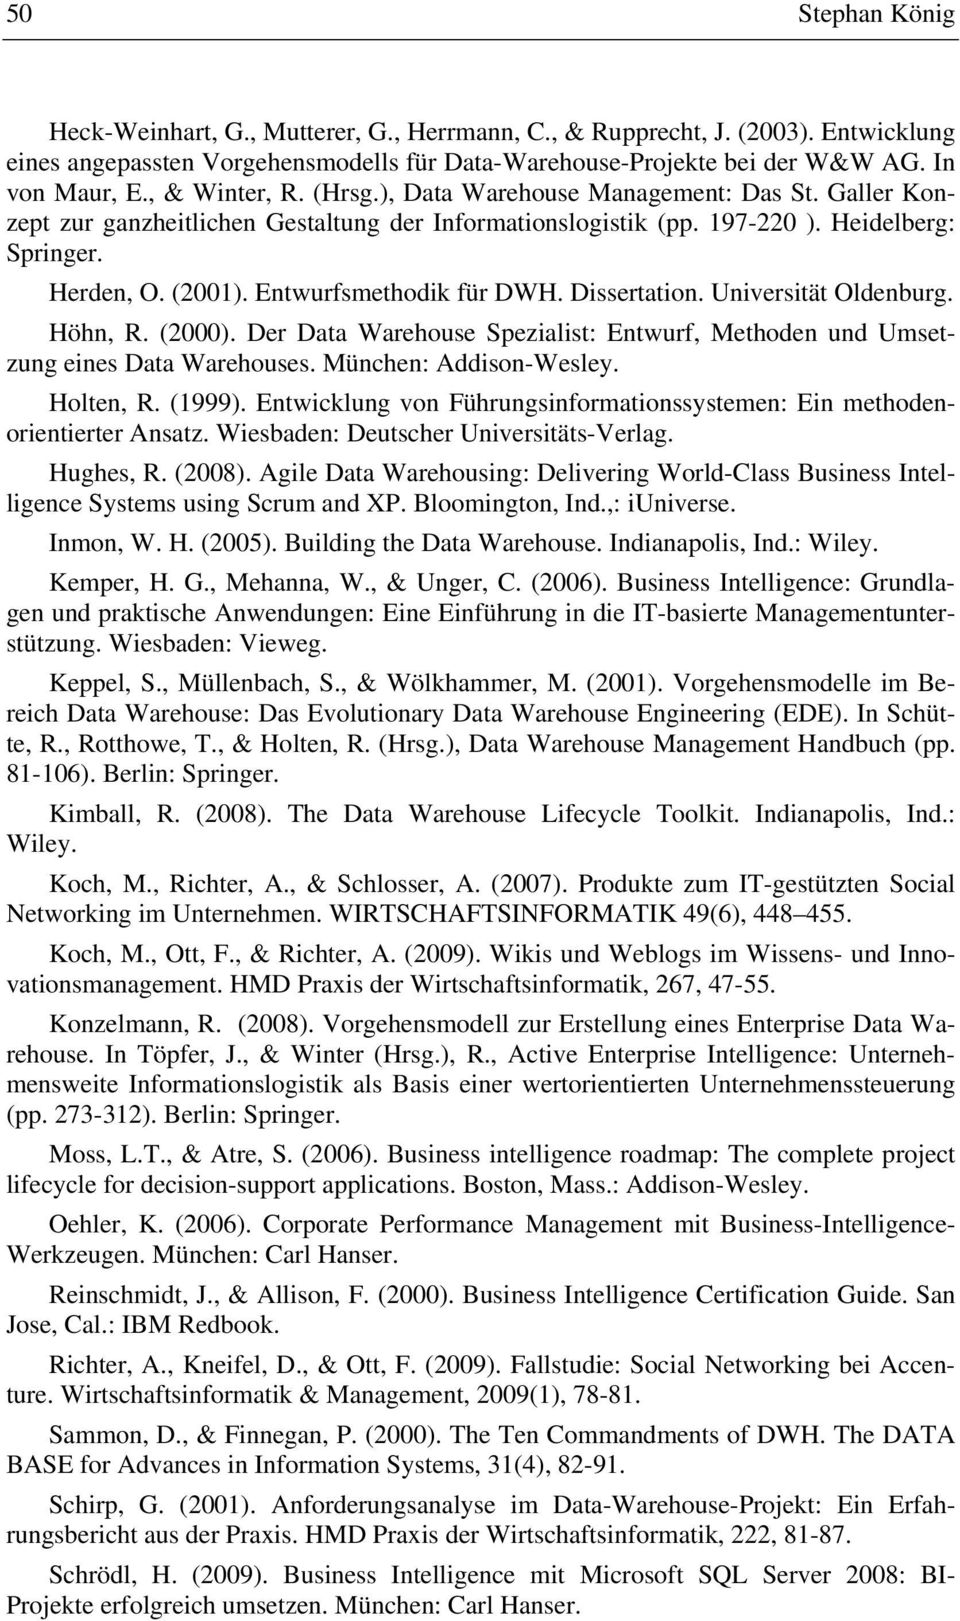 Entwurfsmethodik für DWH. Dissertation. Universität Oldenburg. Höhn, R. (2000). Der Data Warehouse Spezialist: Entwurf, Methoden und Umsetzung eines Data Warehouses. München: Addison-Wesley.